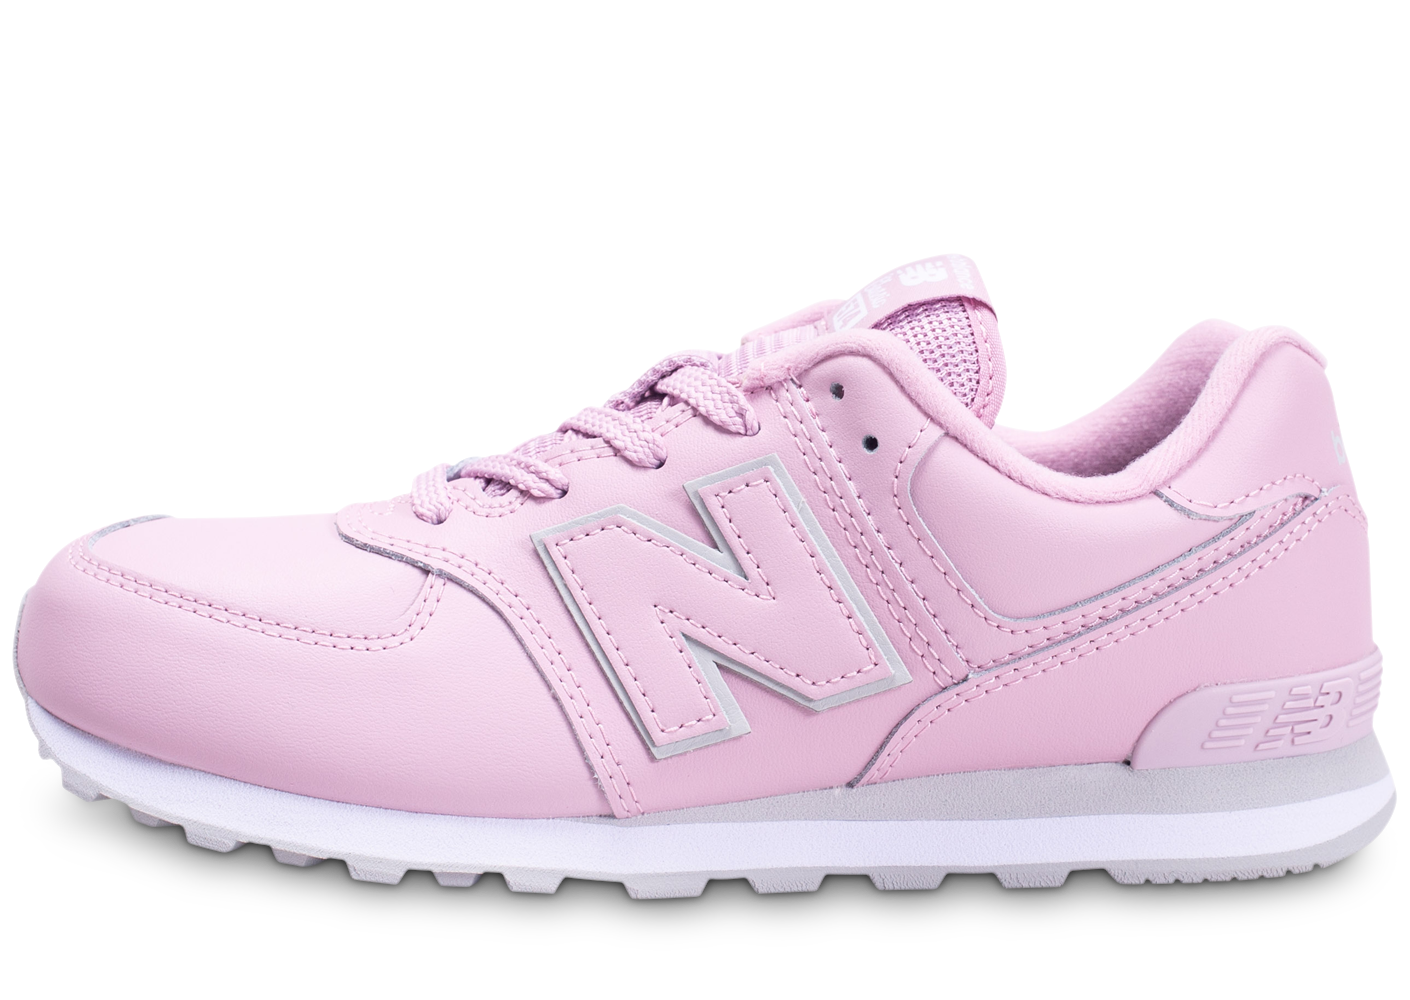 New balance enfant 574 rose et blanche baskets